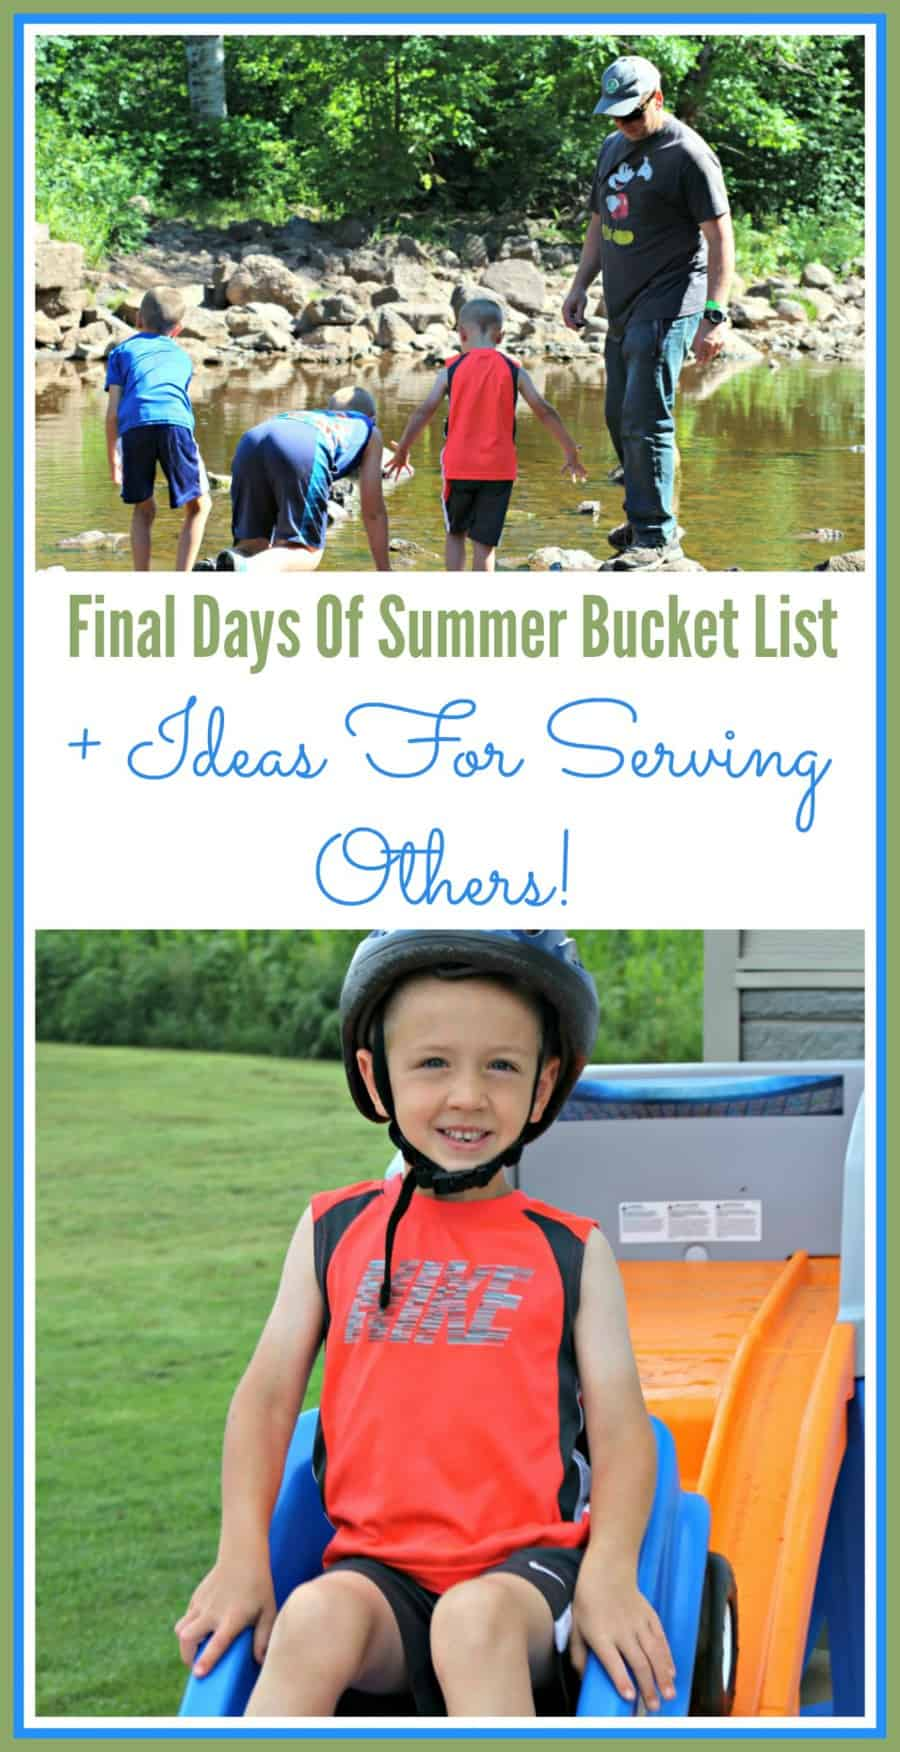 Final Days Of Summer Bucket List And Ideas For Serving Others